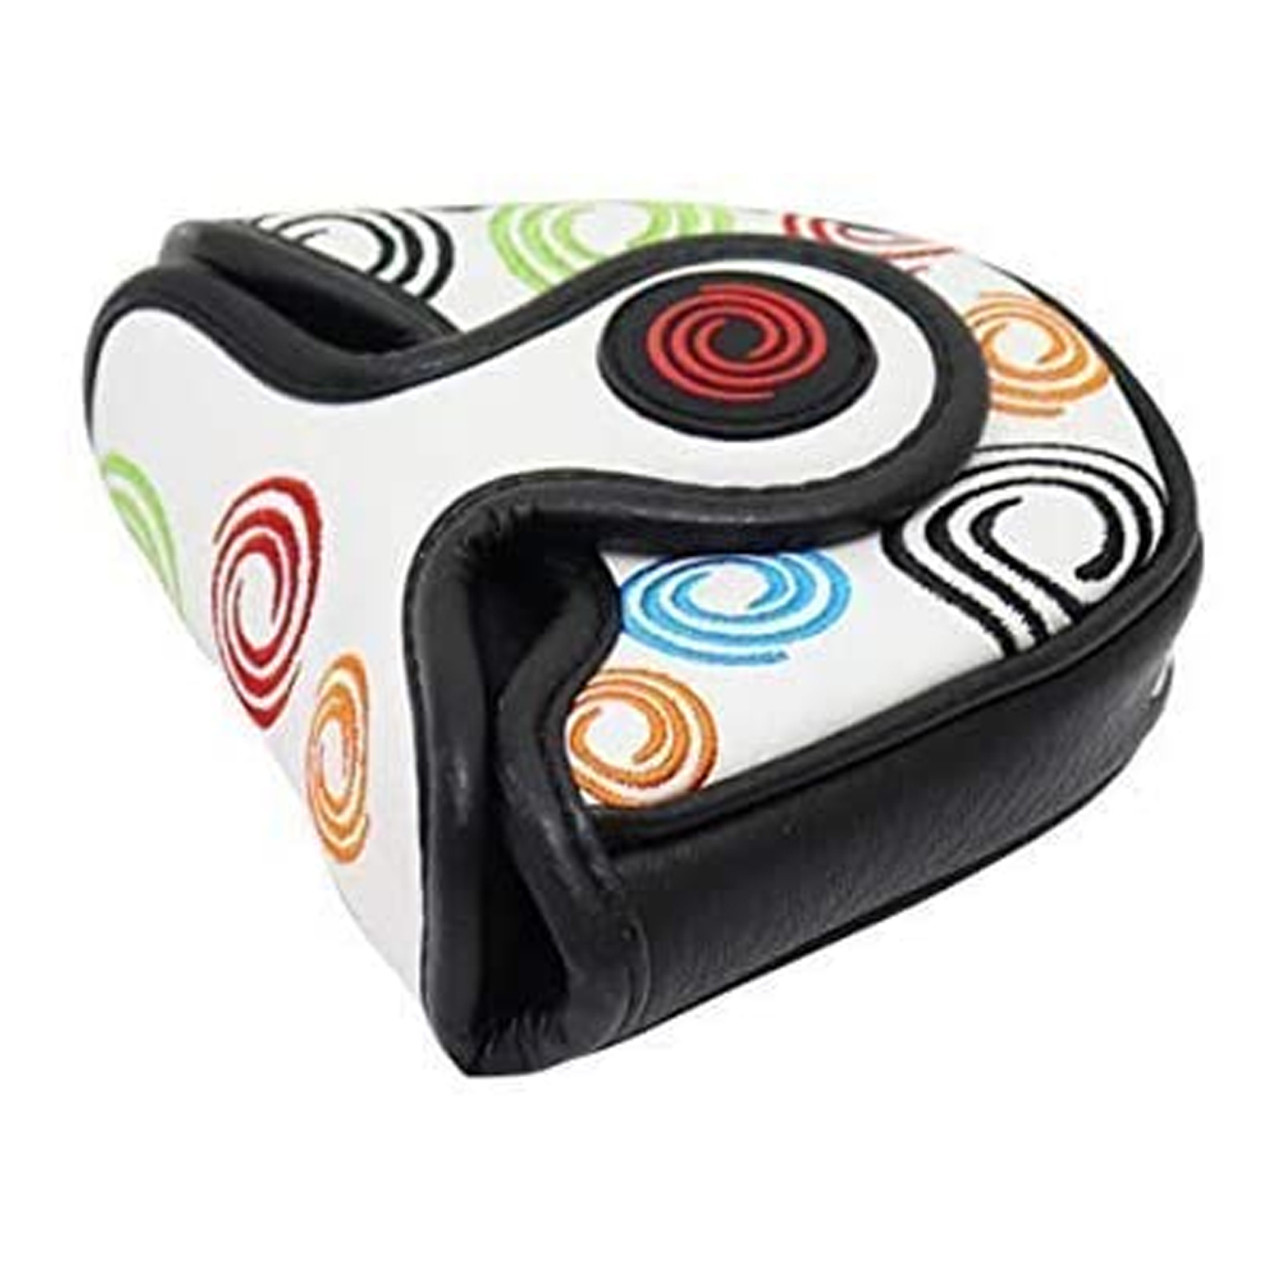 Odyssey Tour Swirl Mallet Putter Headcover - White